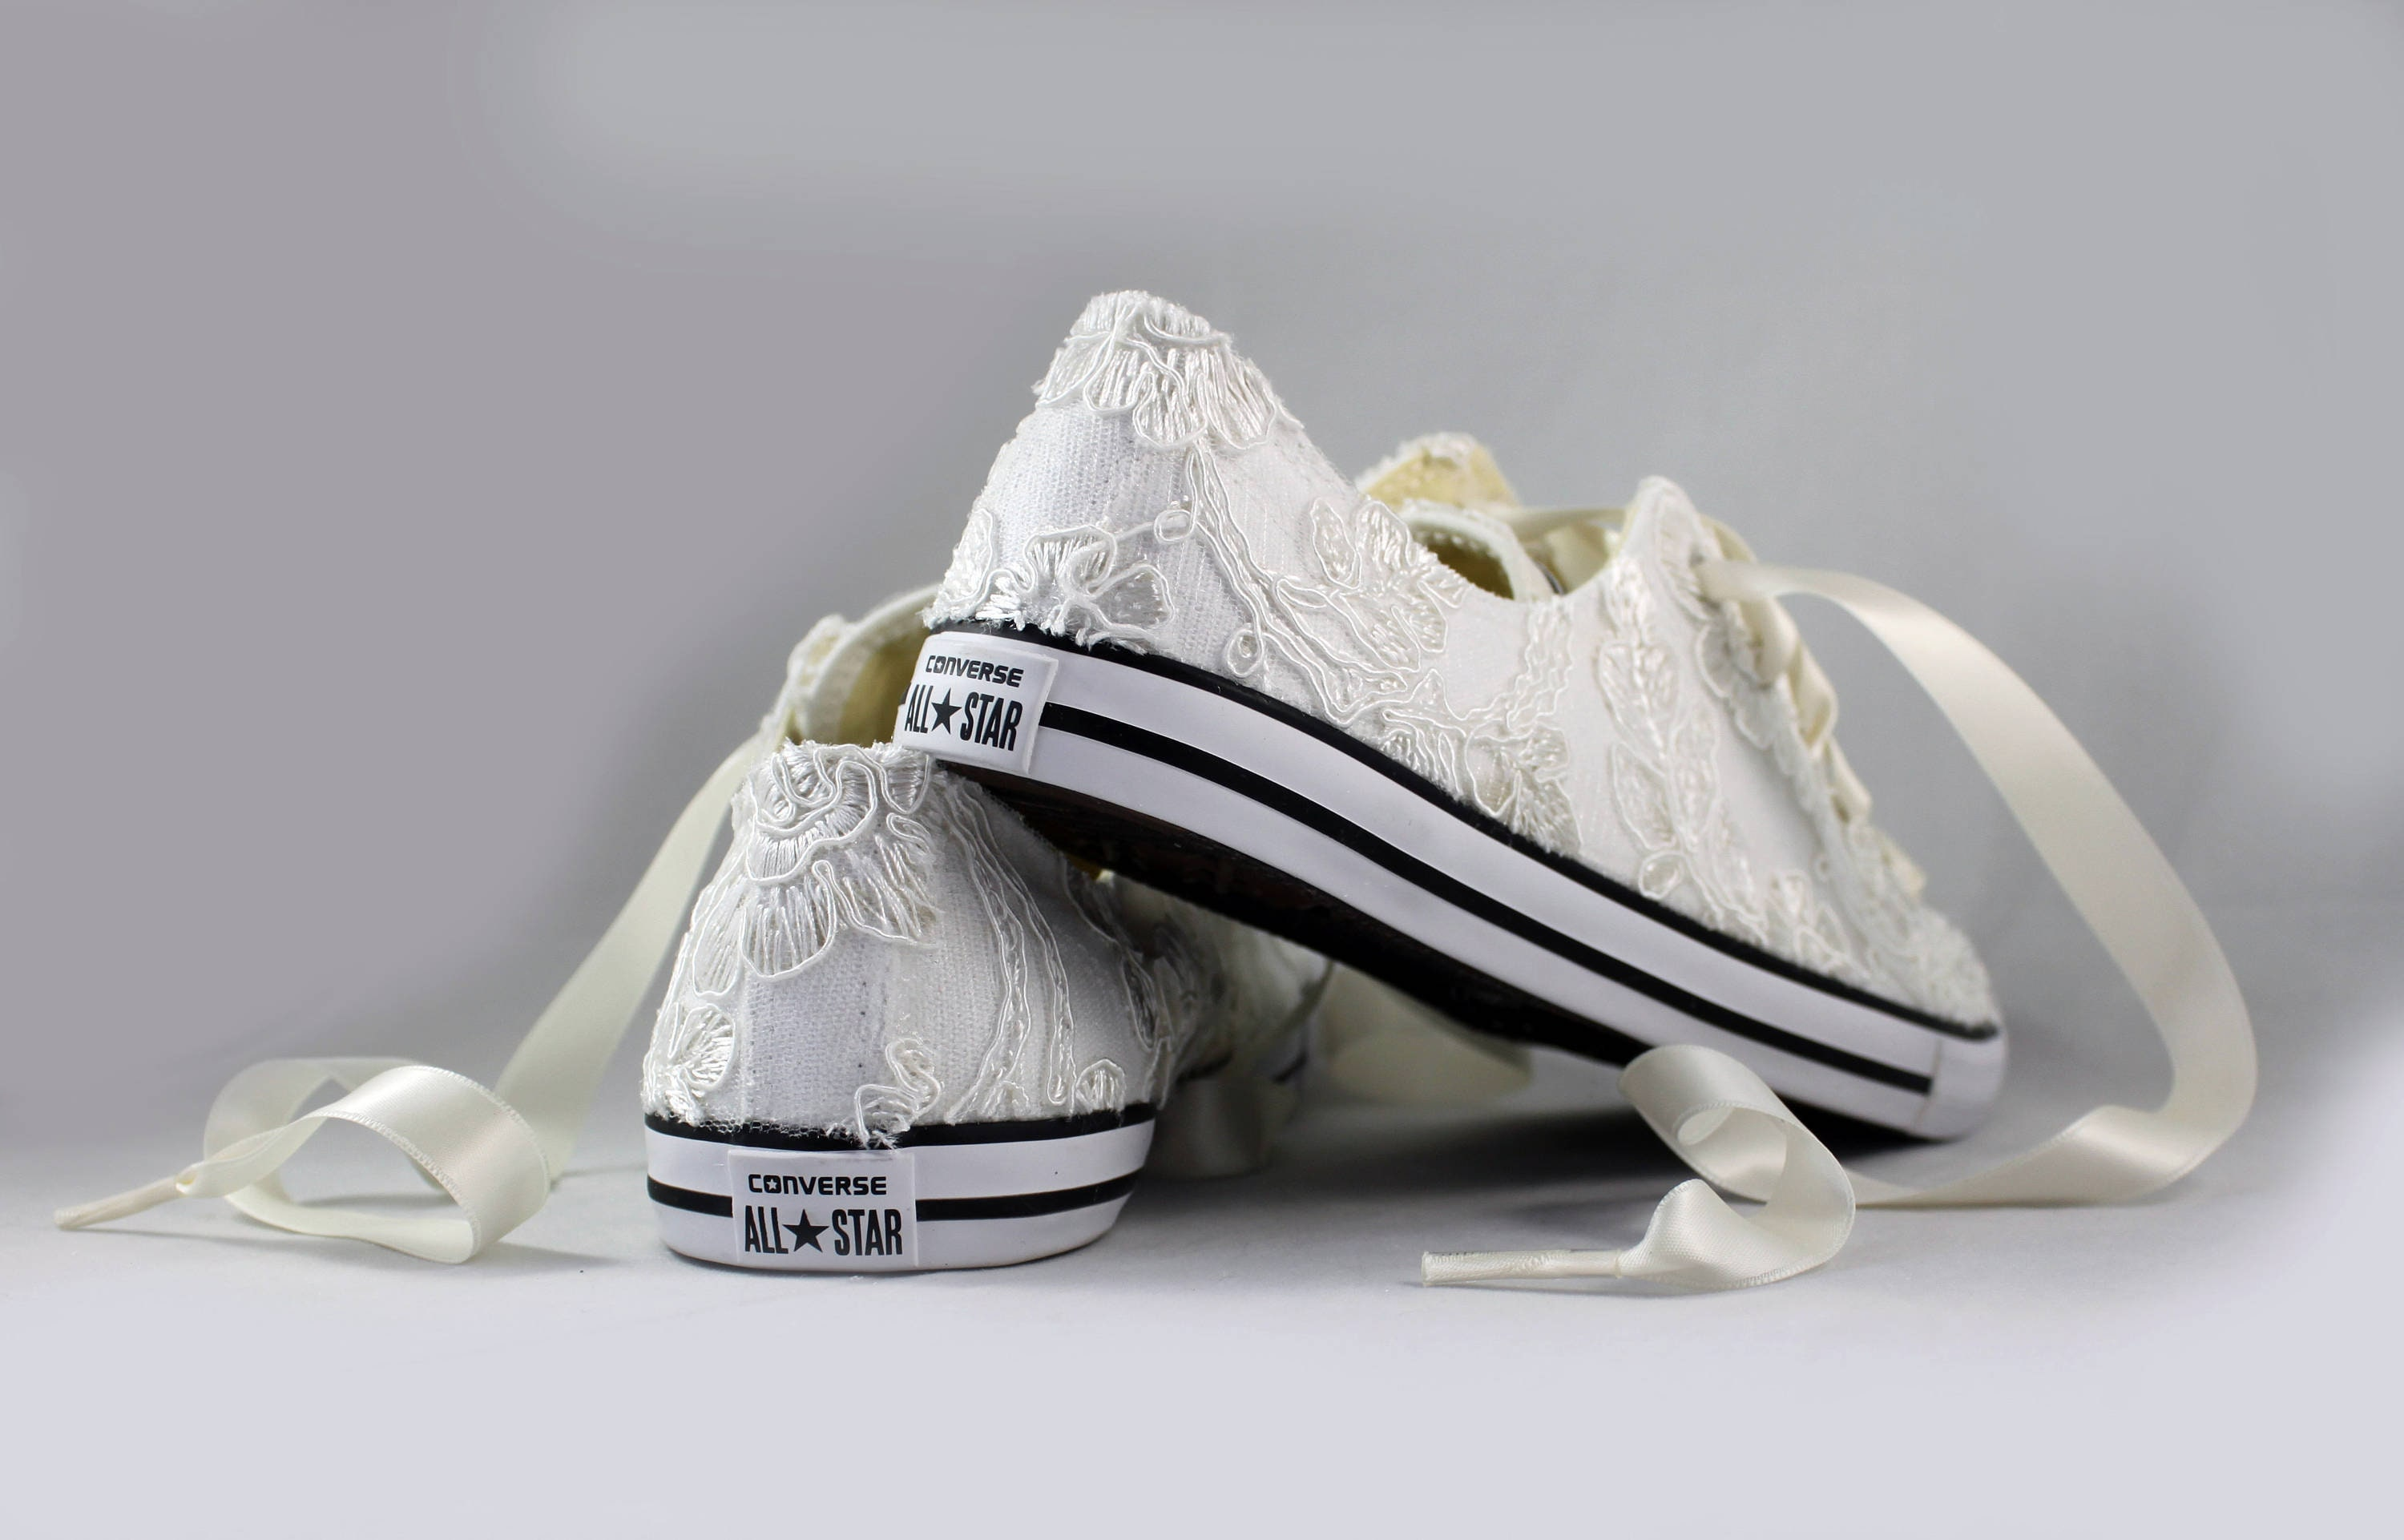 53ded190b79b2 Floral Ivory Lace Wedding Converse -Ivory Lace Bridal Converses --Floral  Ivory Lace Converse -- Wedding Tennis shoes